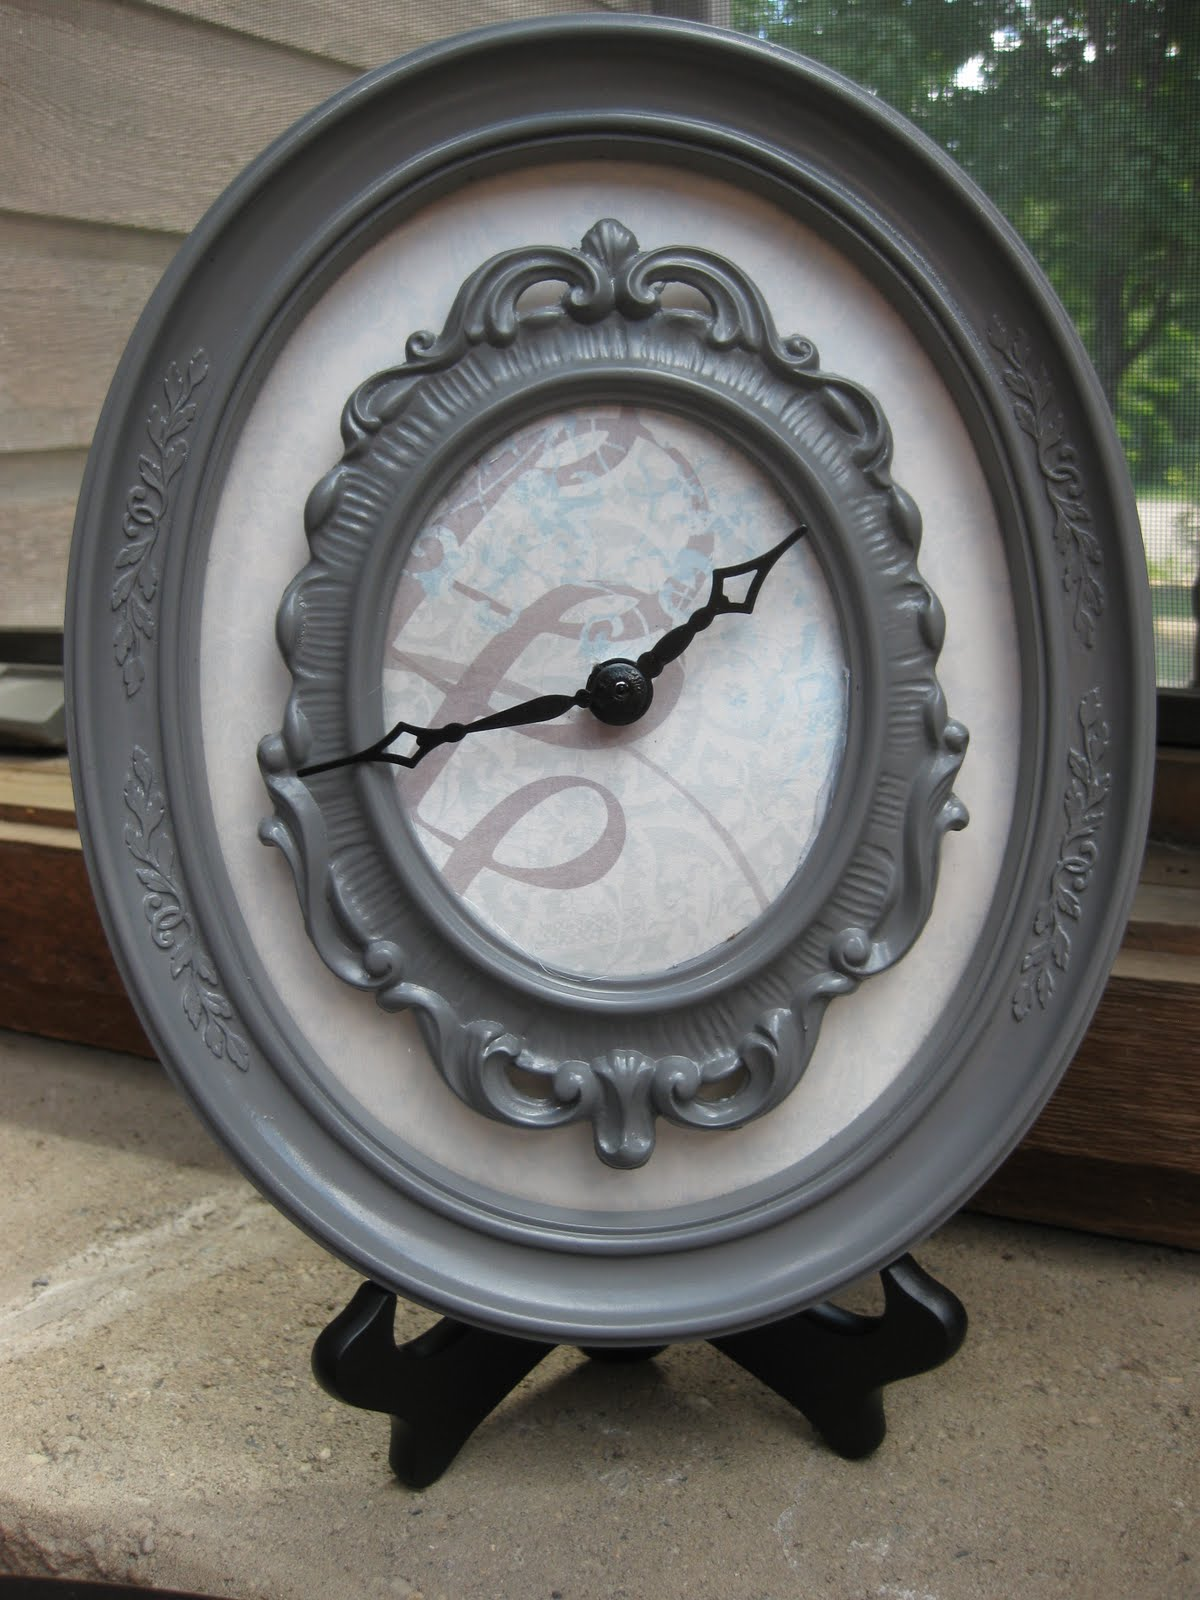 Small frame clock